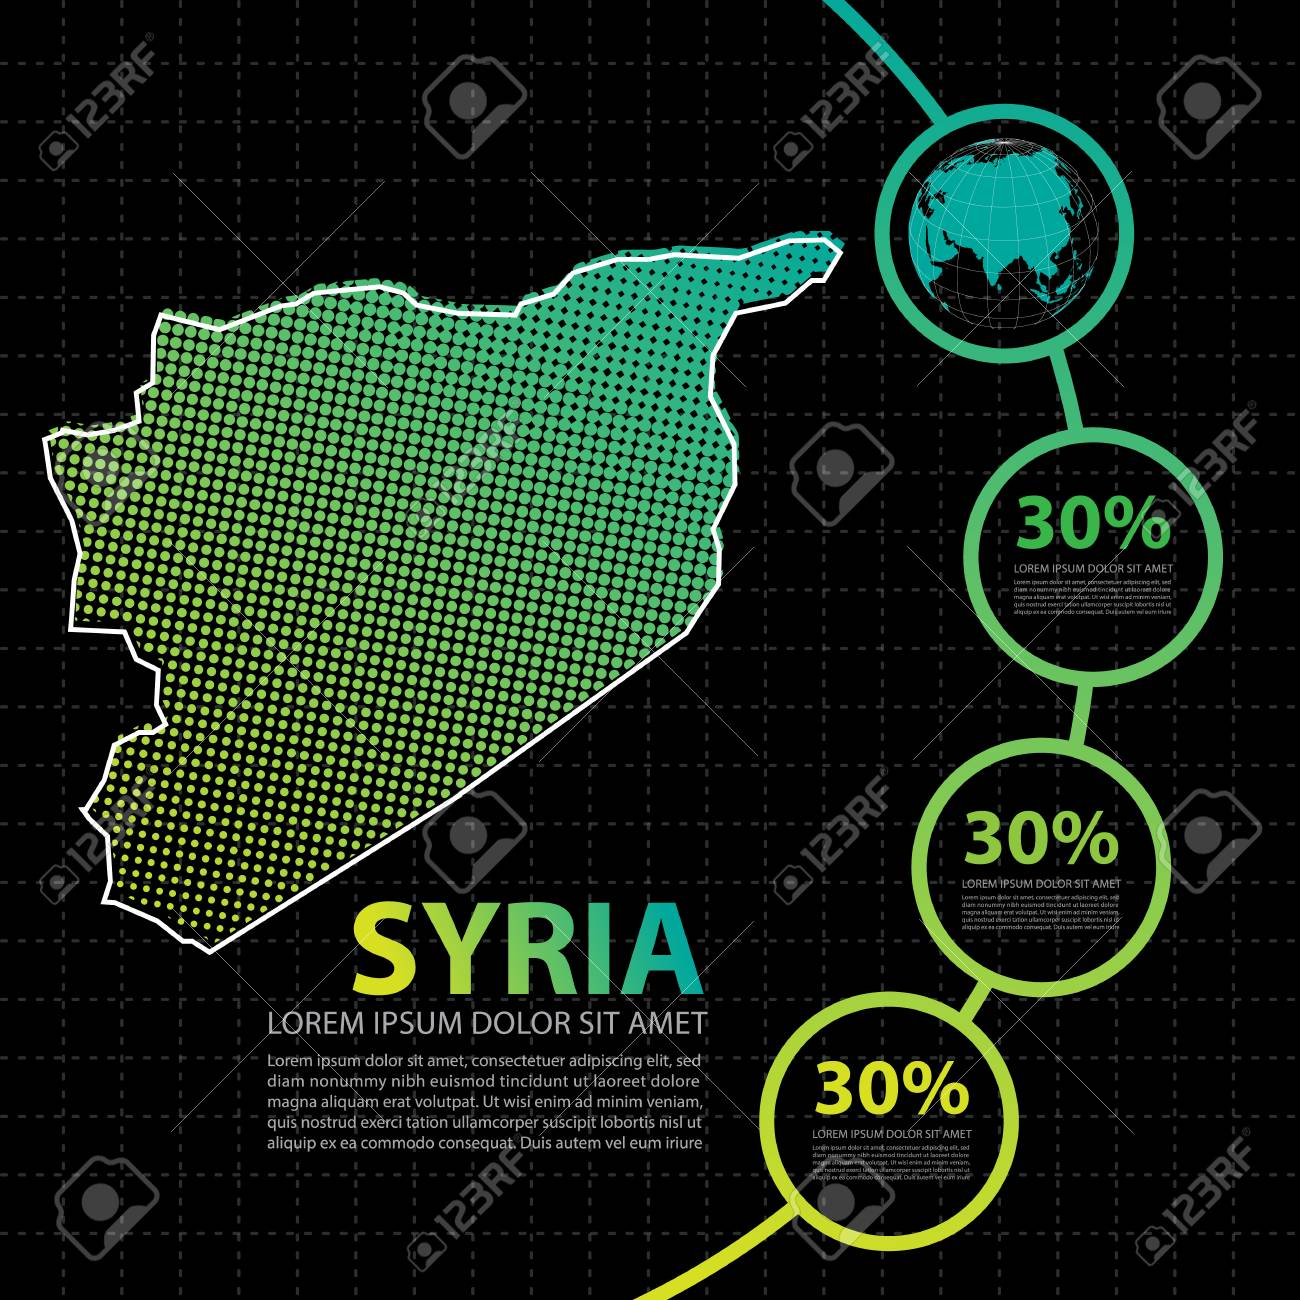 Syria Map Infographic Design Template Stock Vector